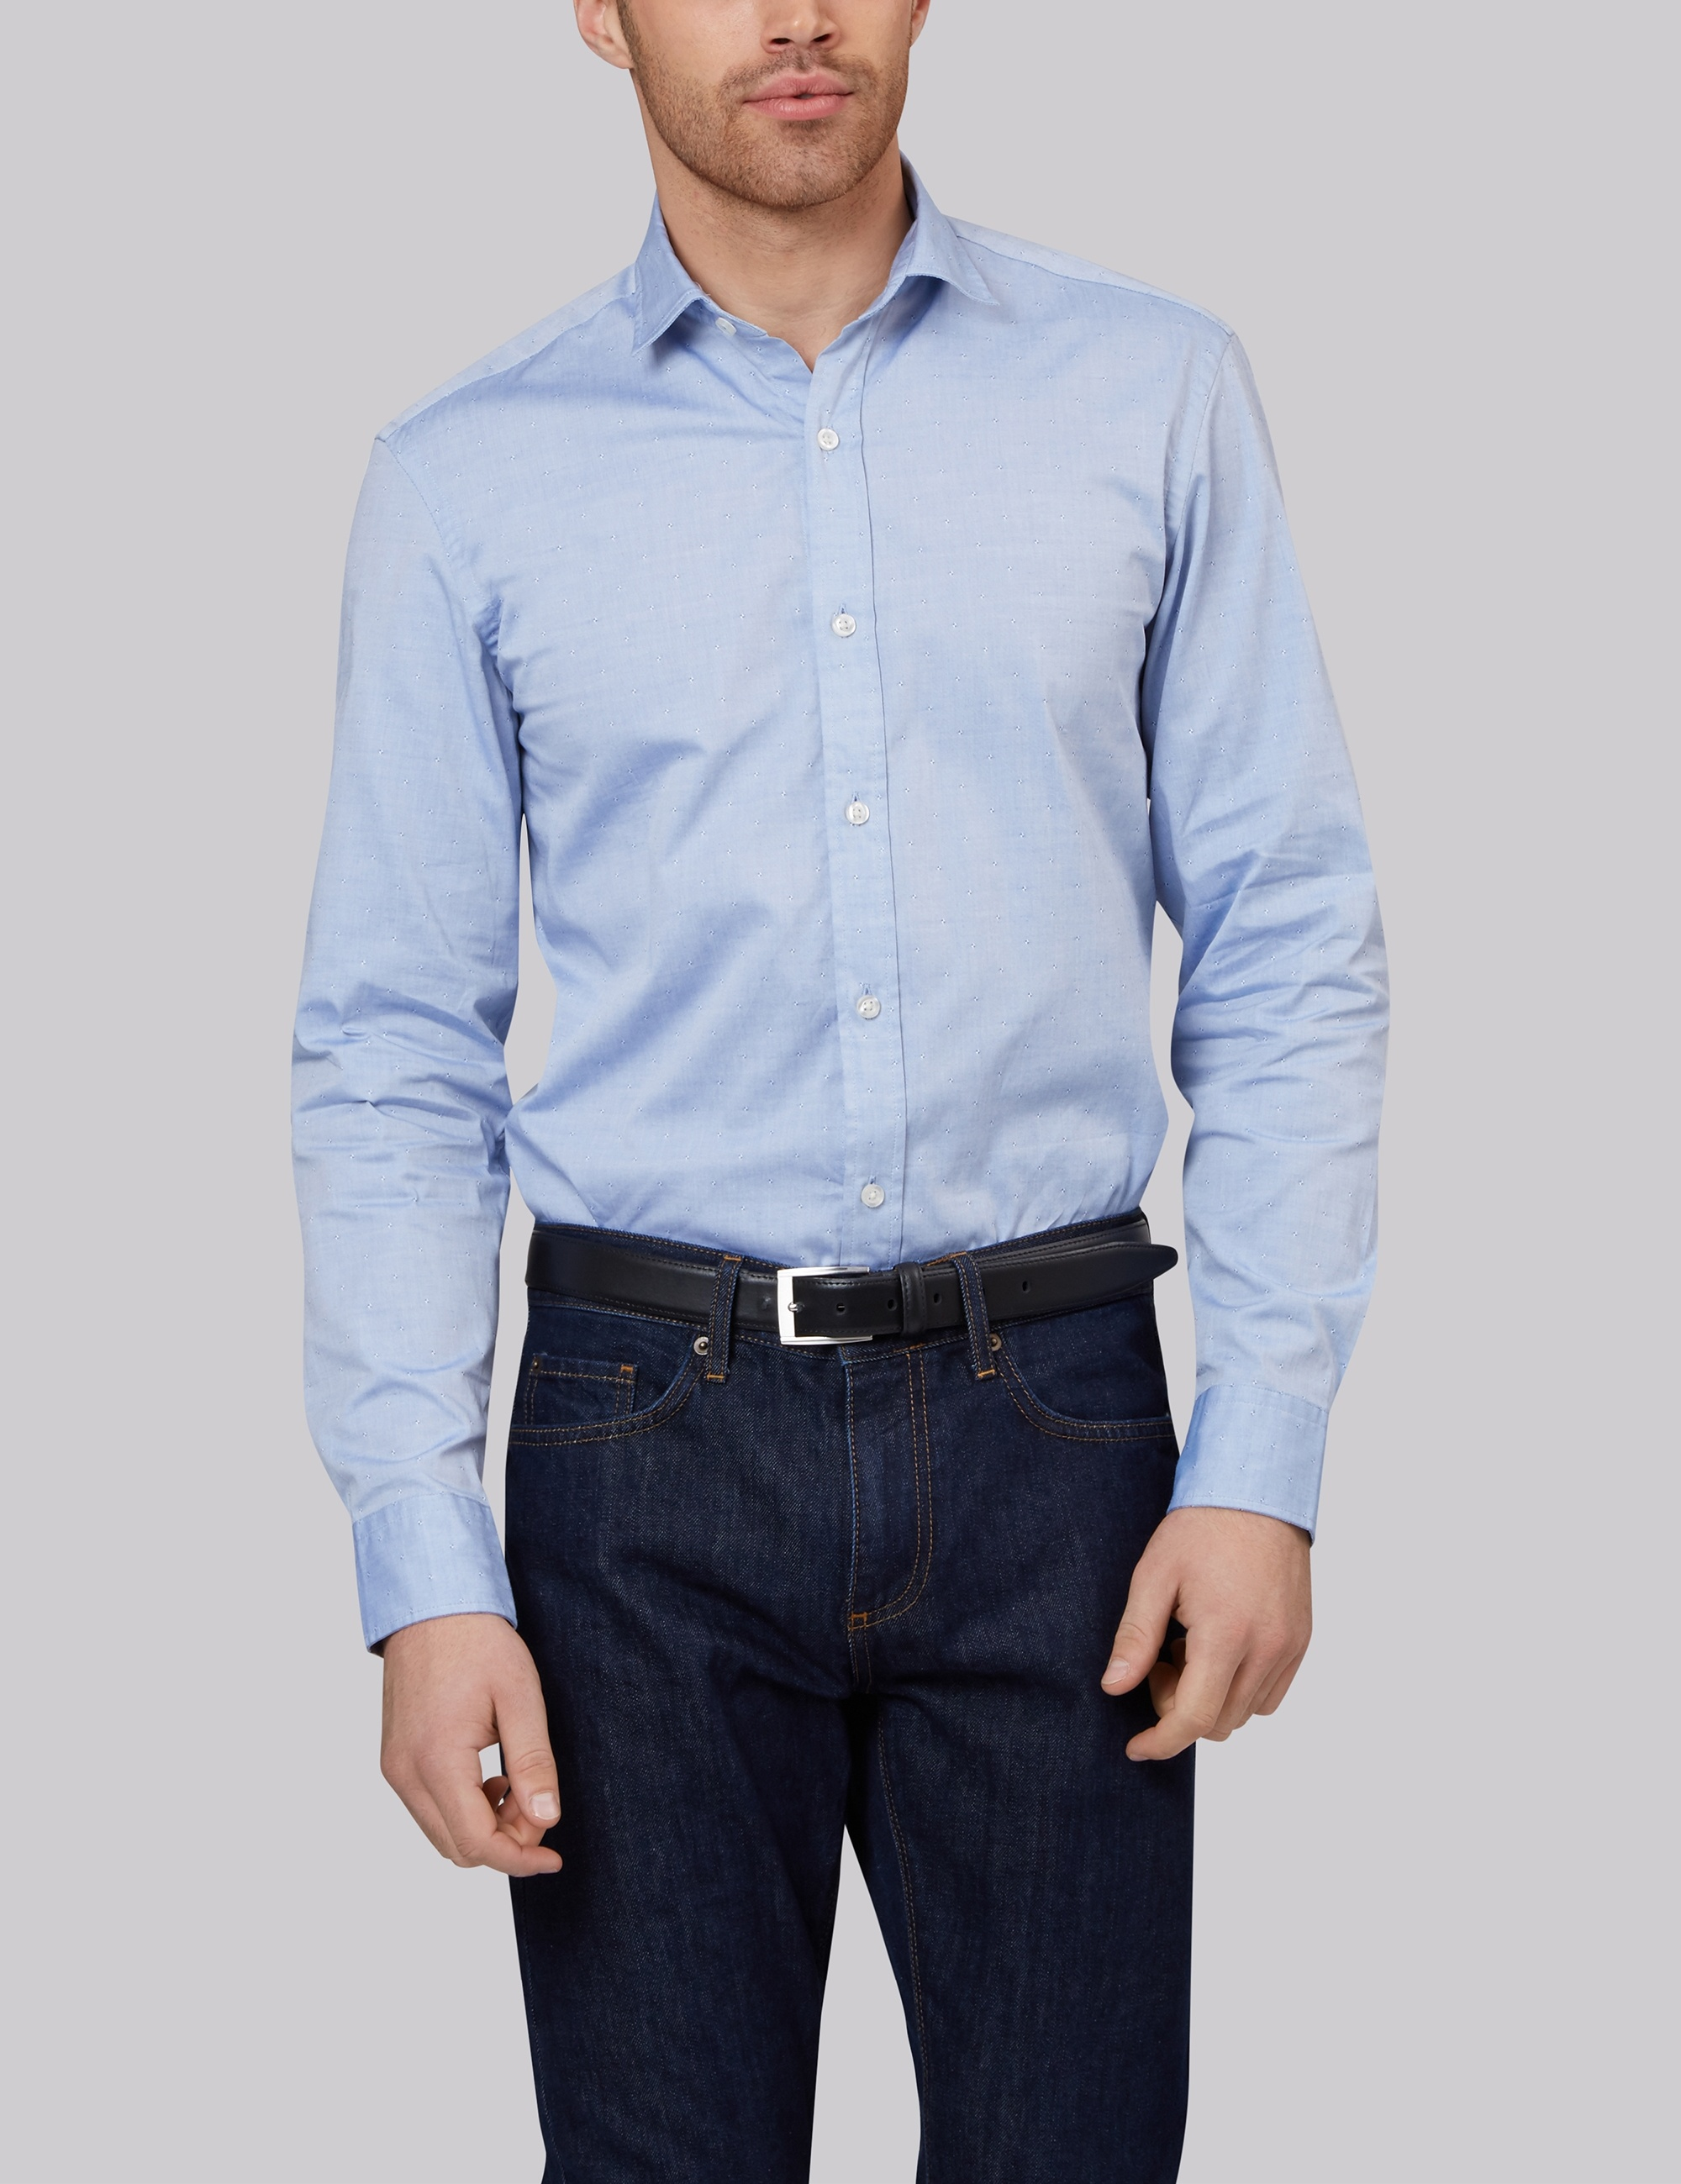 Moss Bros Moss 1851 Slim Fit Blue Oxford Texture Casual Shirt